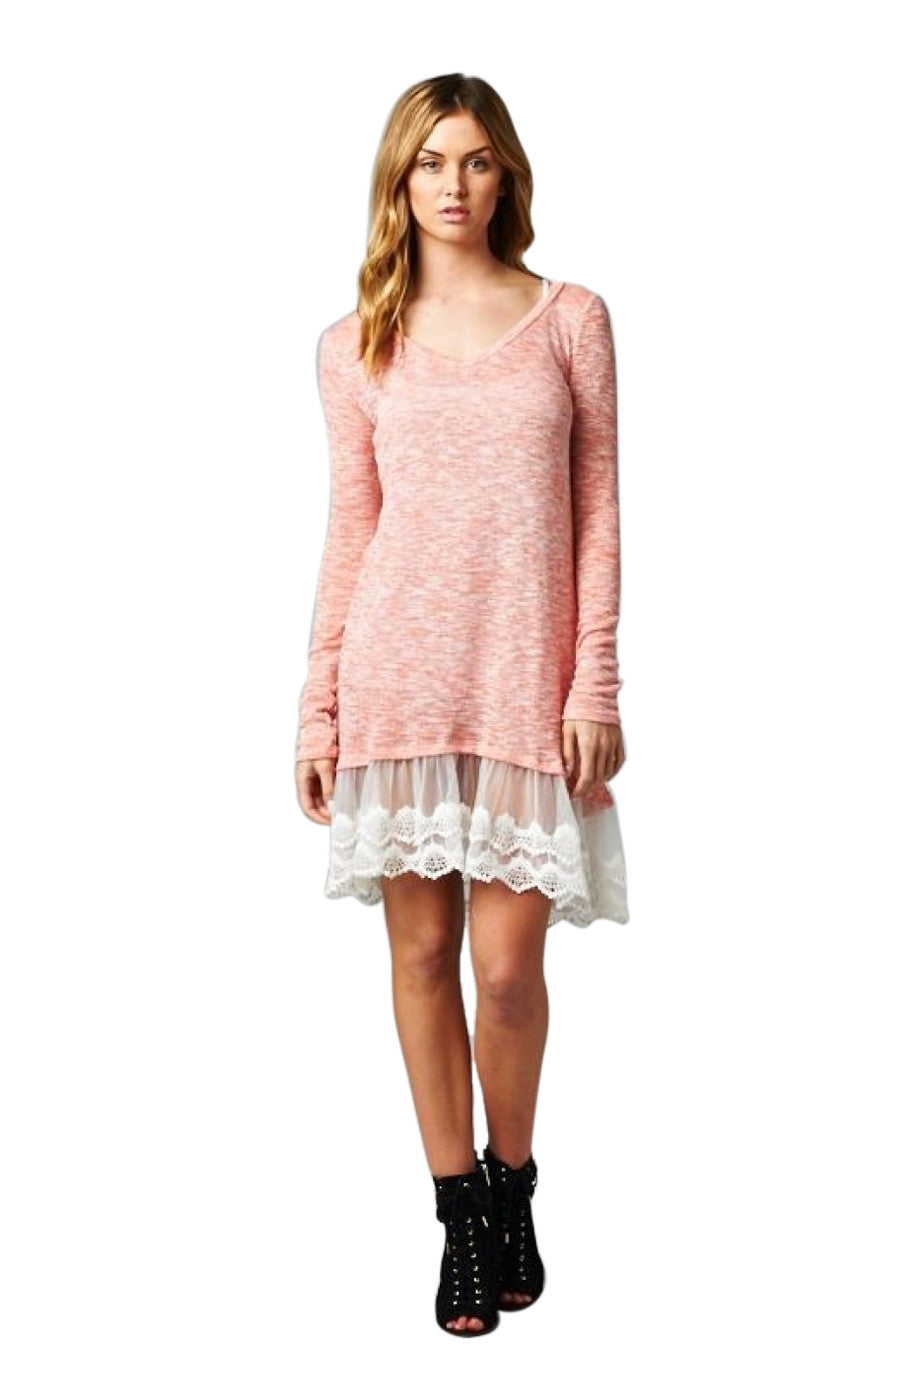 54bfcd256165b Oversized Long Sleeve Lace Trimmed Tunic Dress | 30% Off First Order | Peach